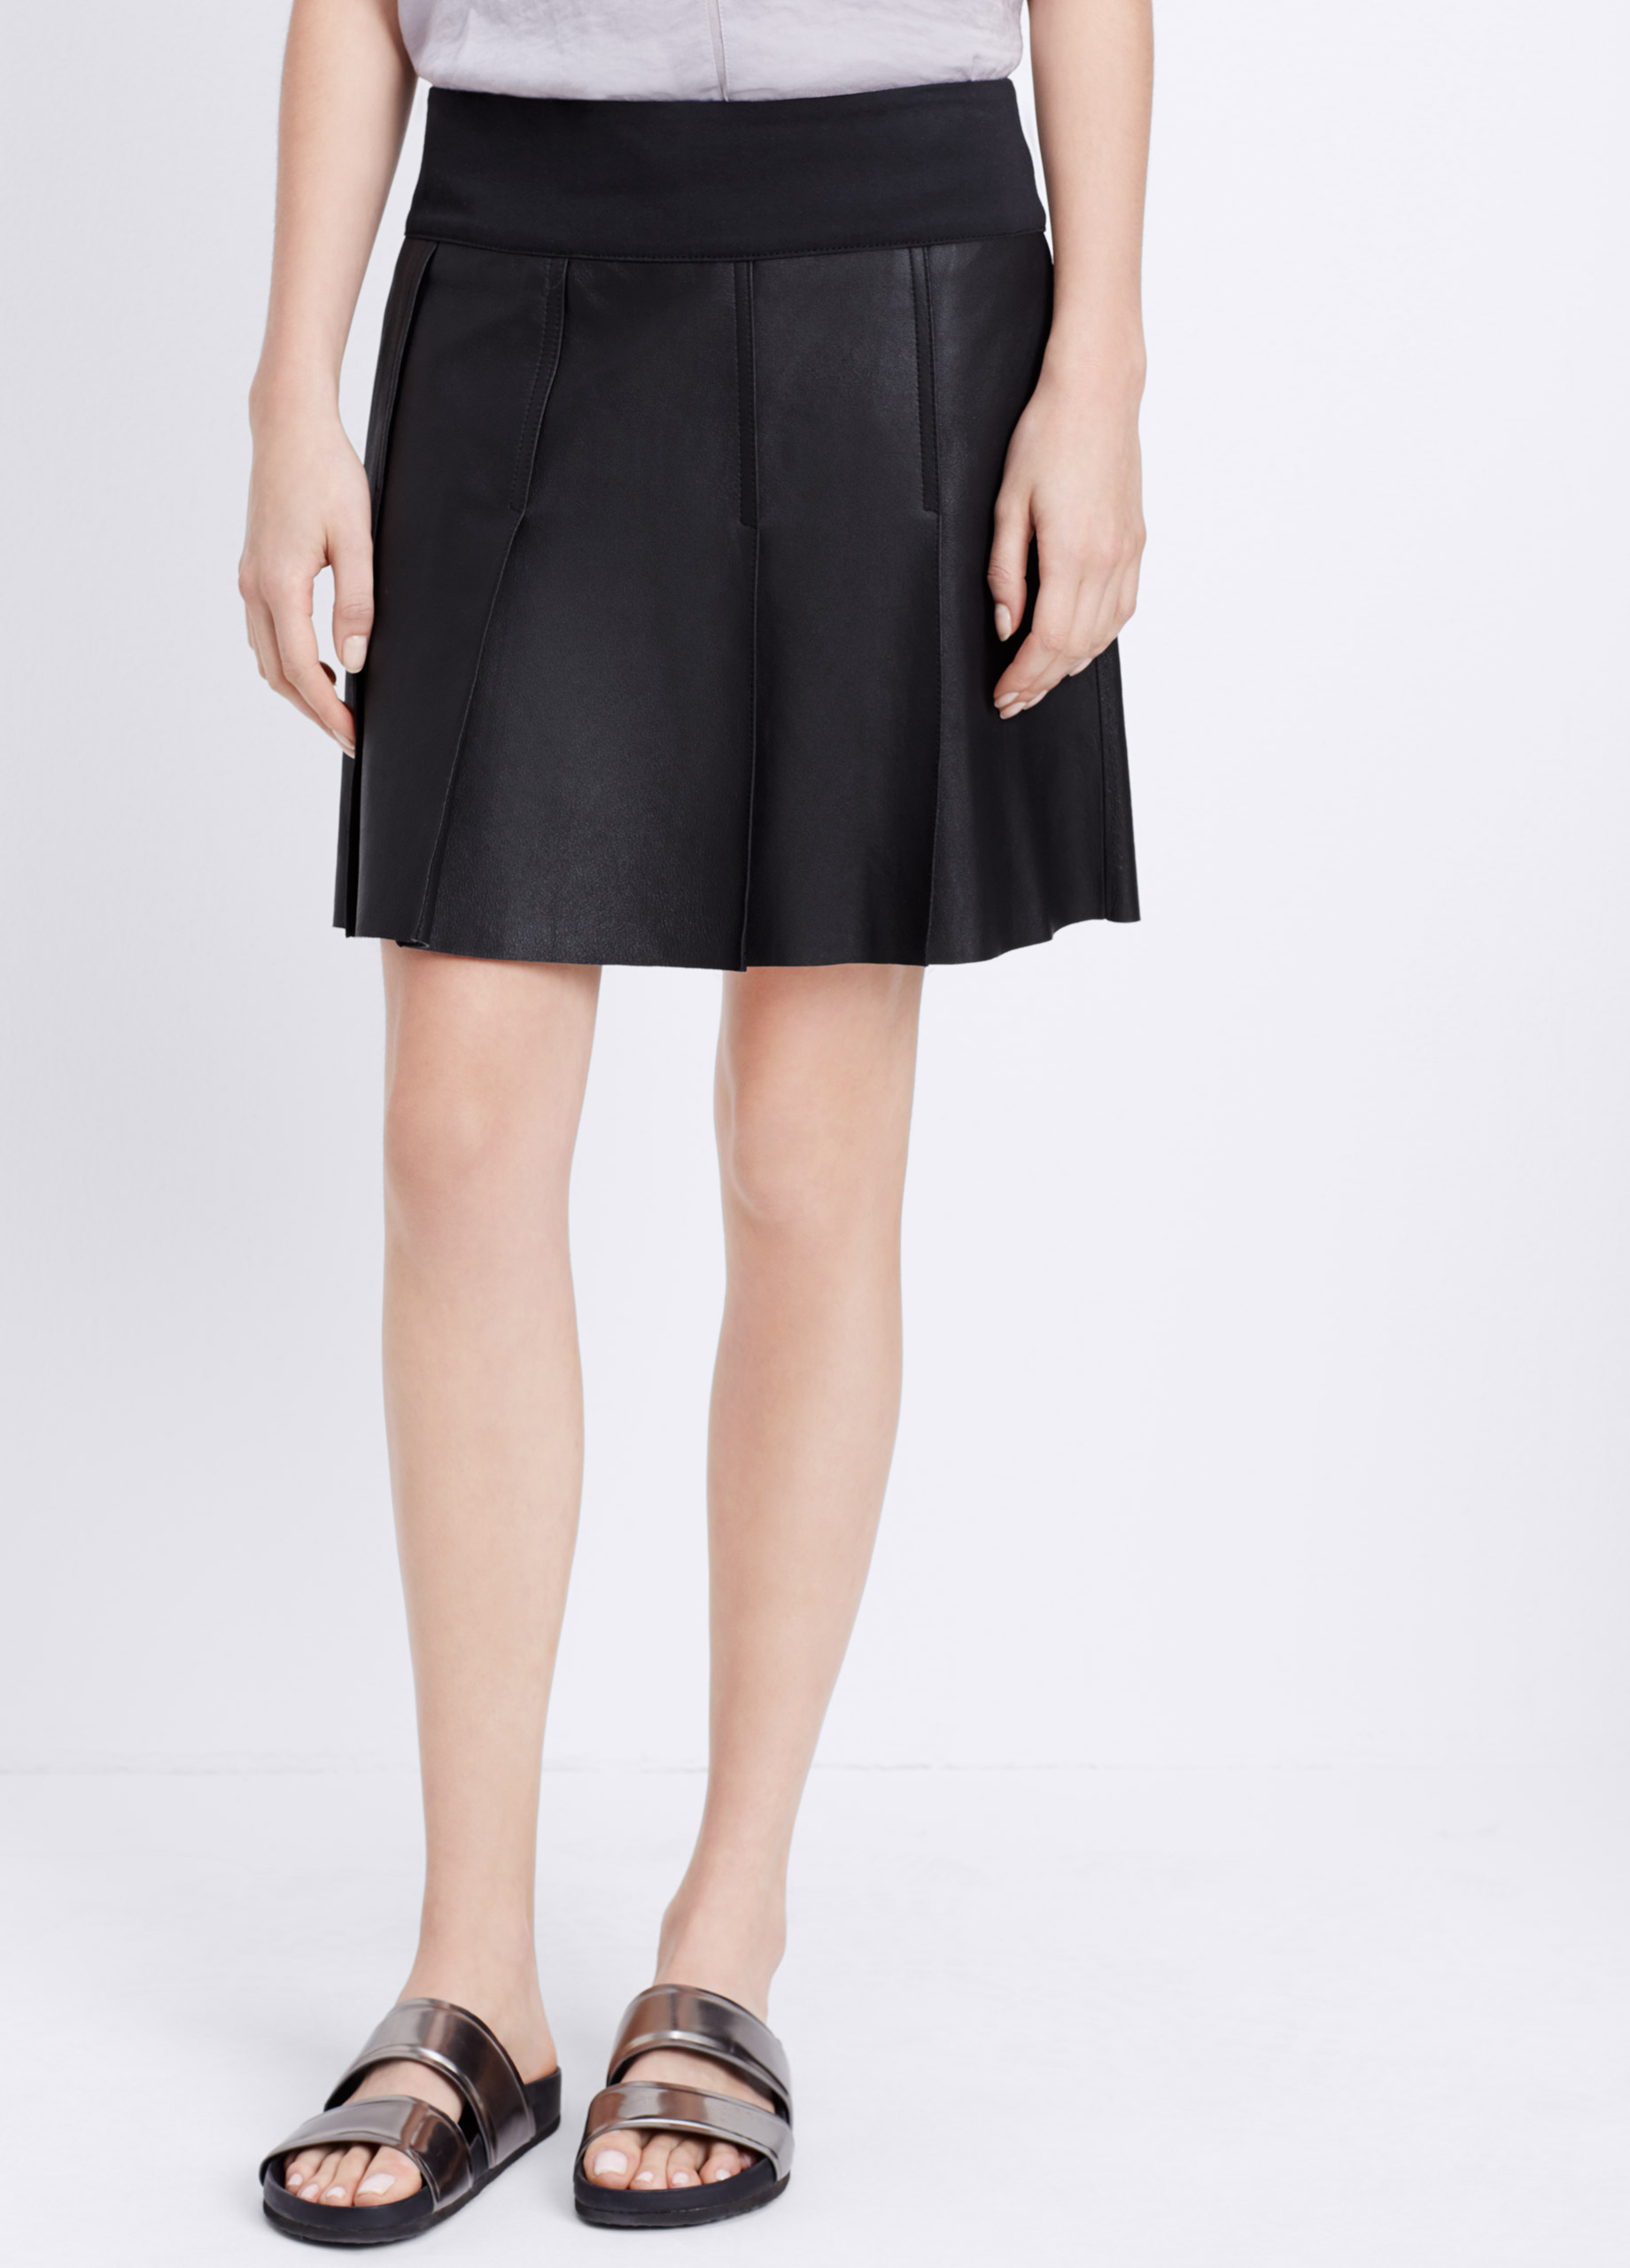 d8c2aeca8a Gallery. Women's Black Leather Skirts Women's Leather Mini Skirts